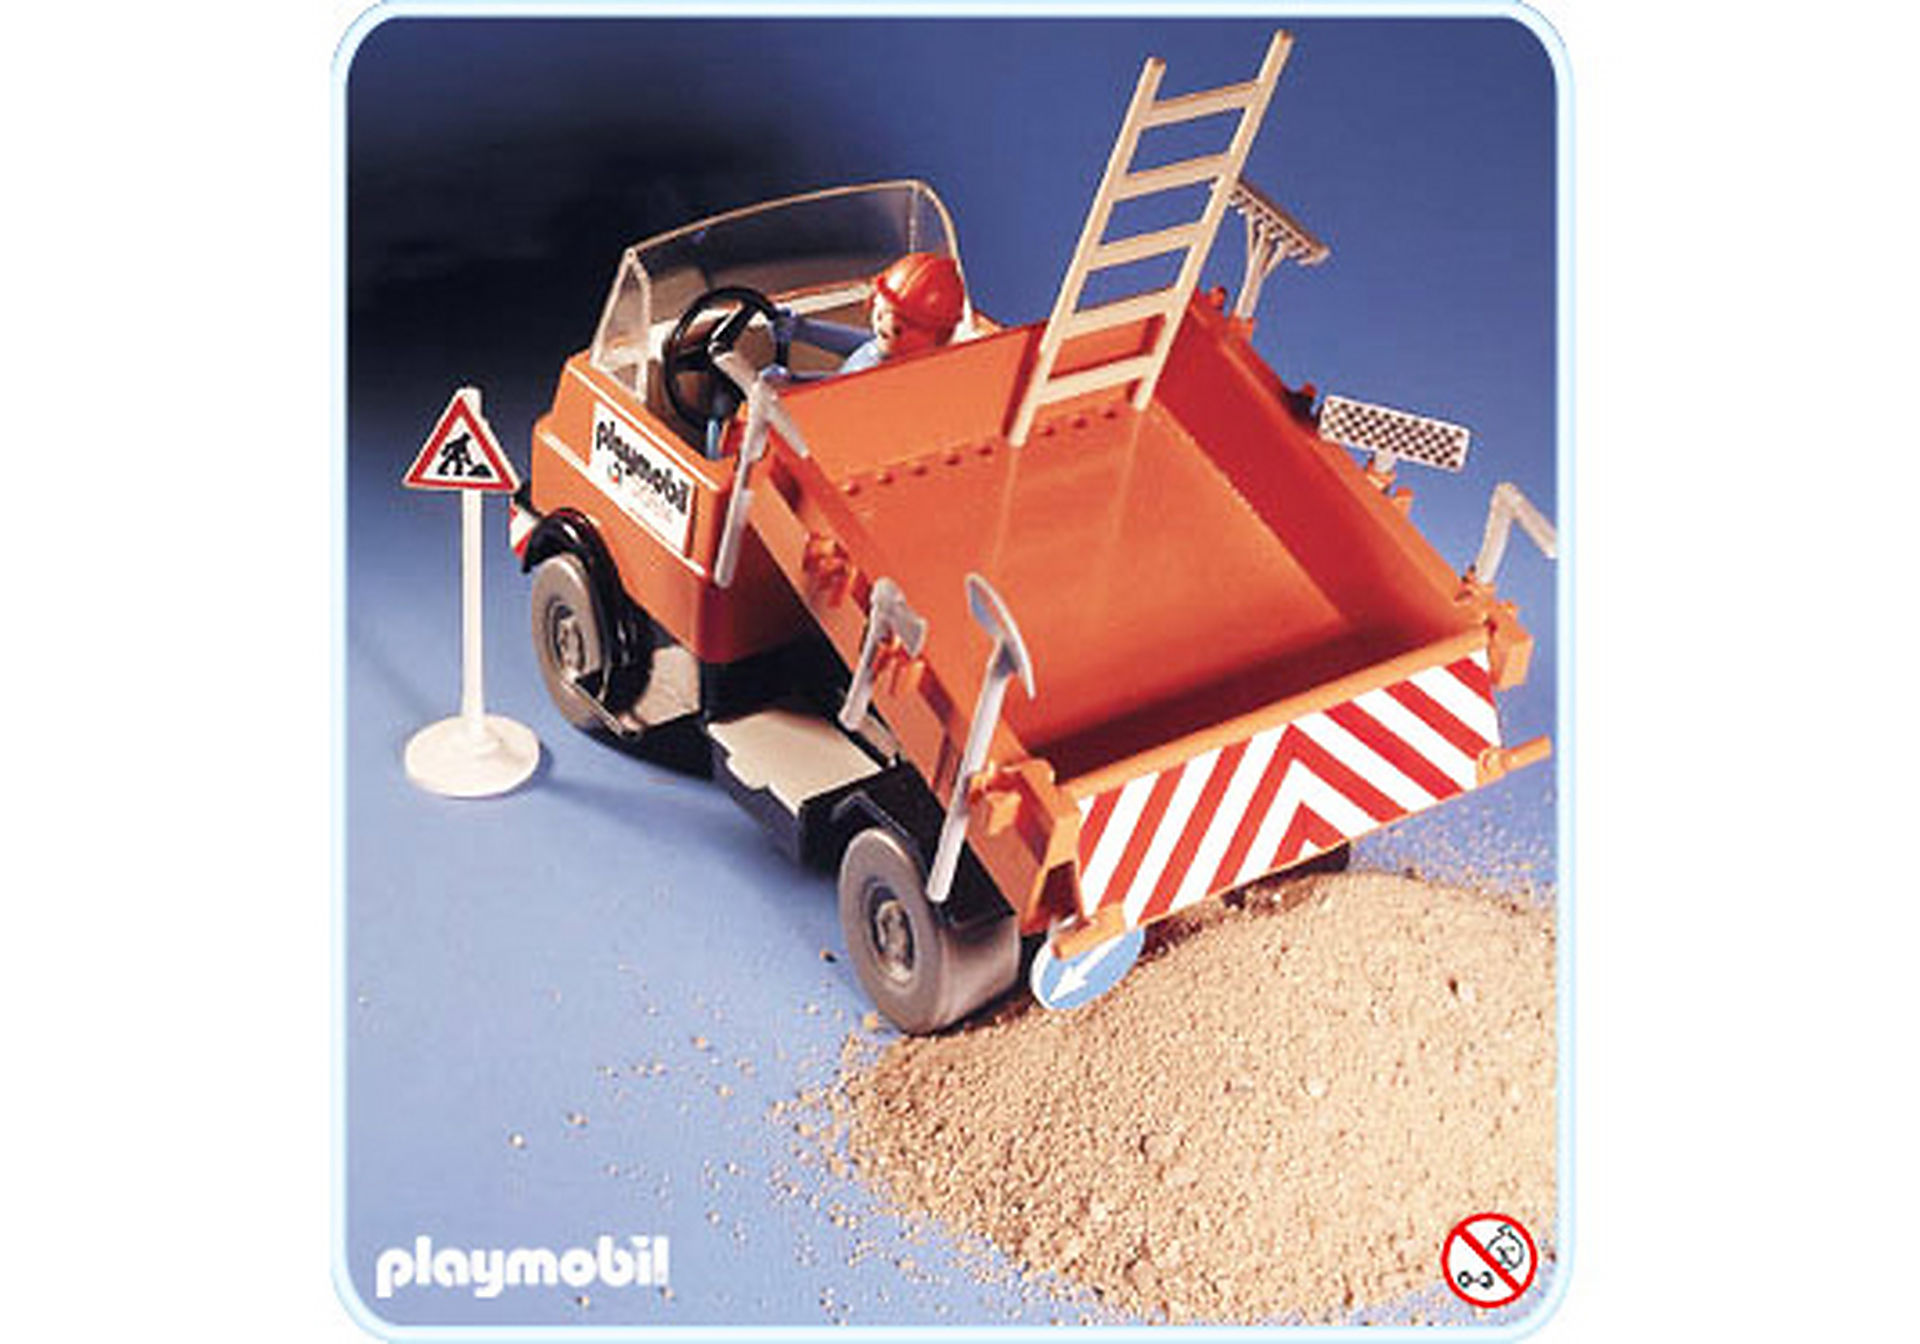 http://media.playmobil.com/i/playmobil/3203-A_product_detail/Camion chantier